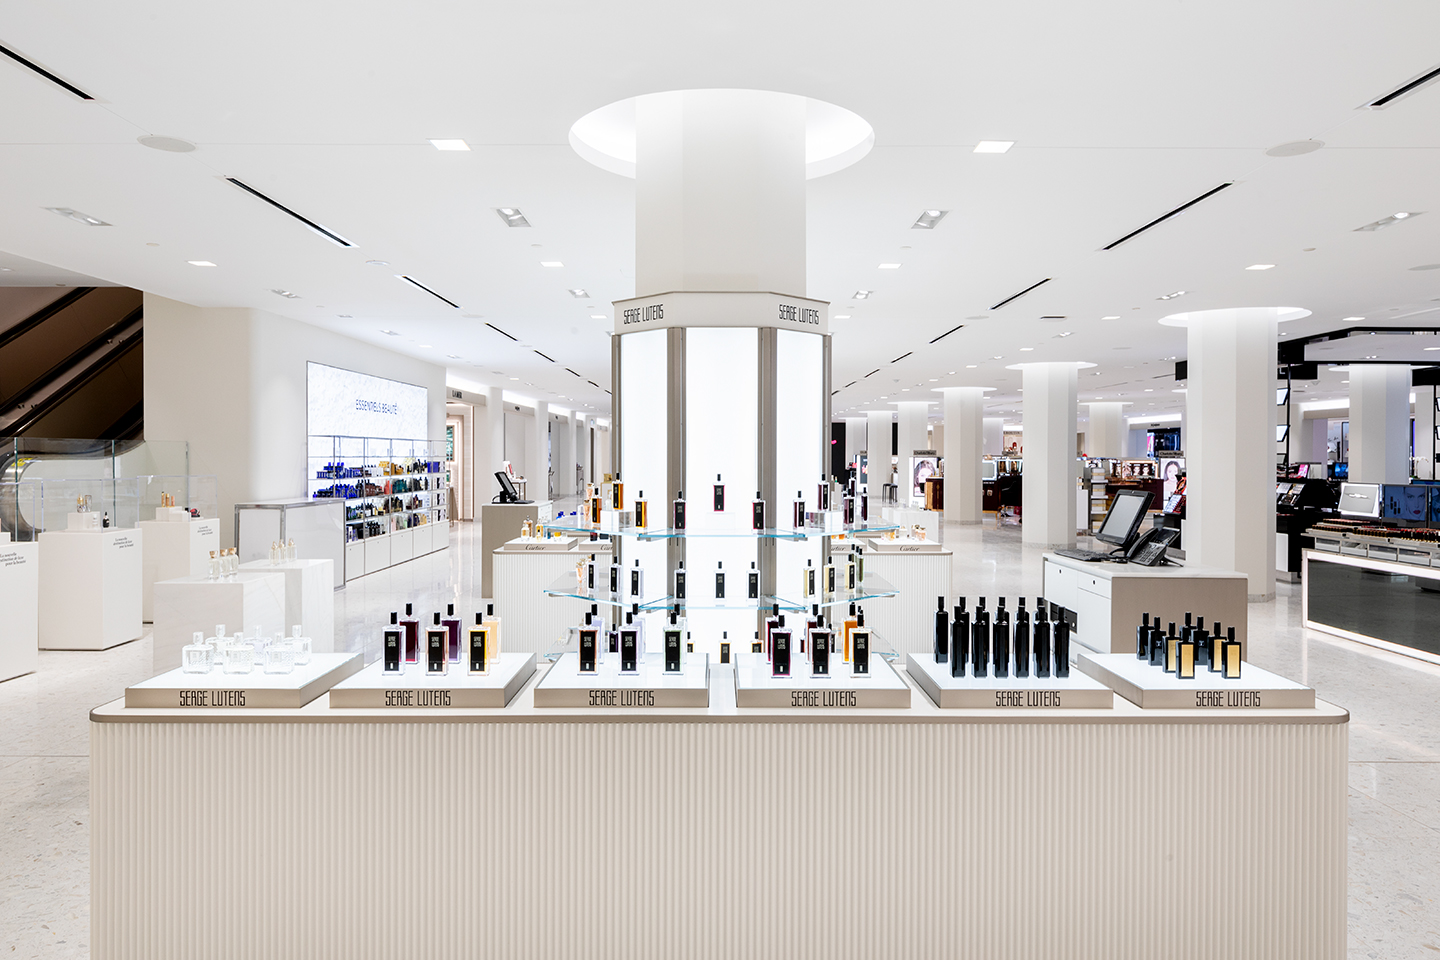 Jeffrey Hutchison & Associates: Projects: Holt Renfrew Ogilvy